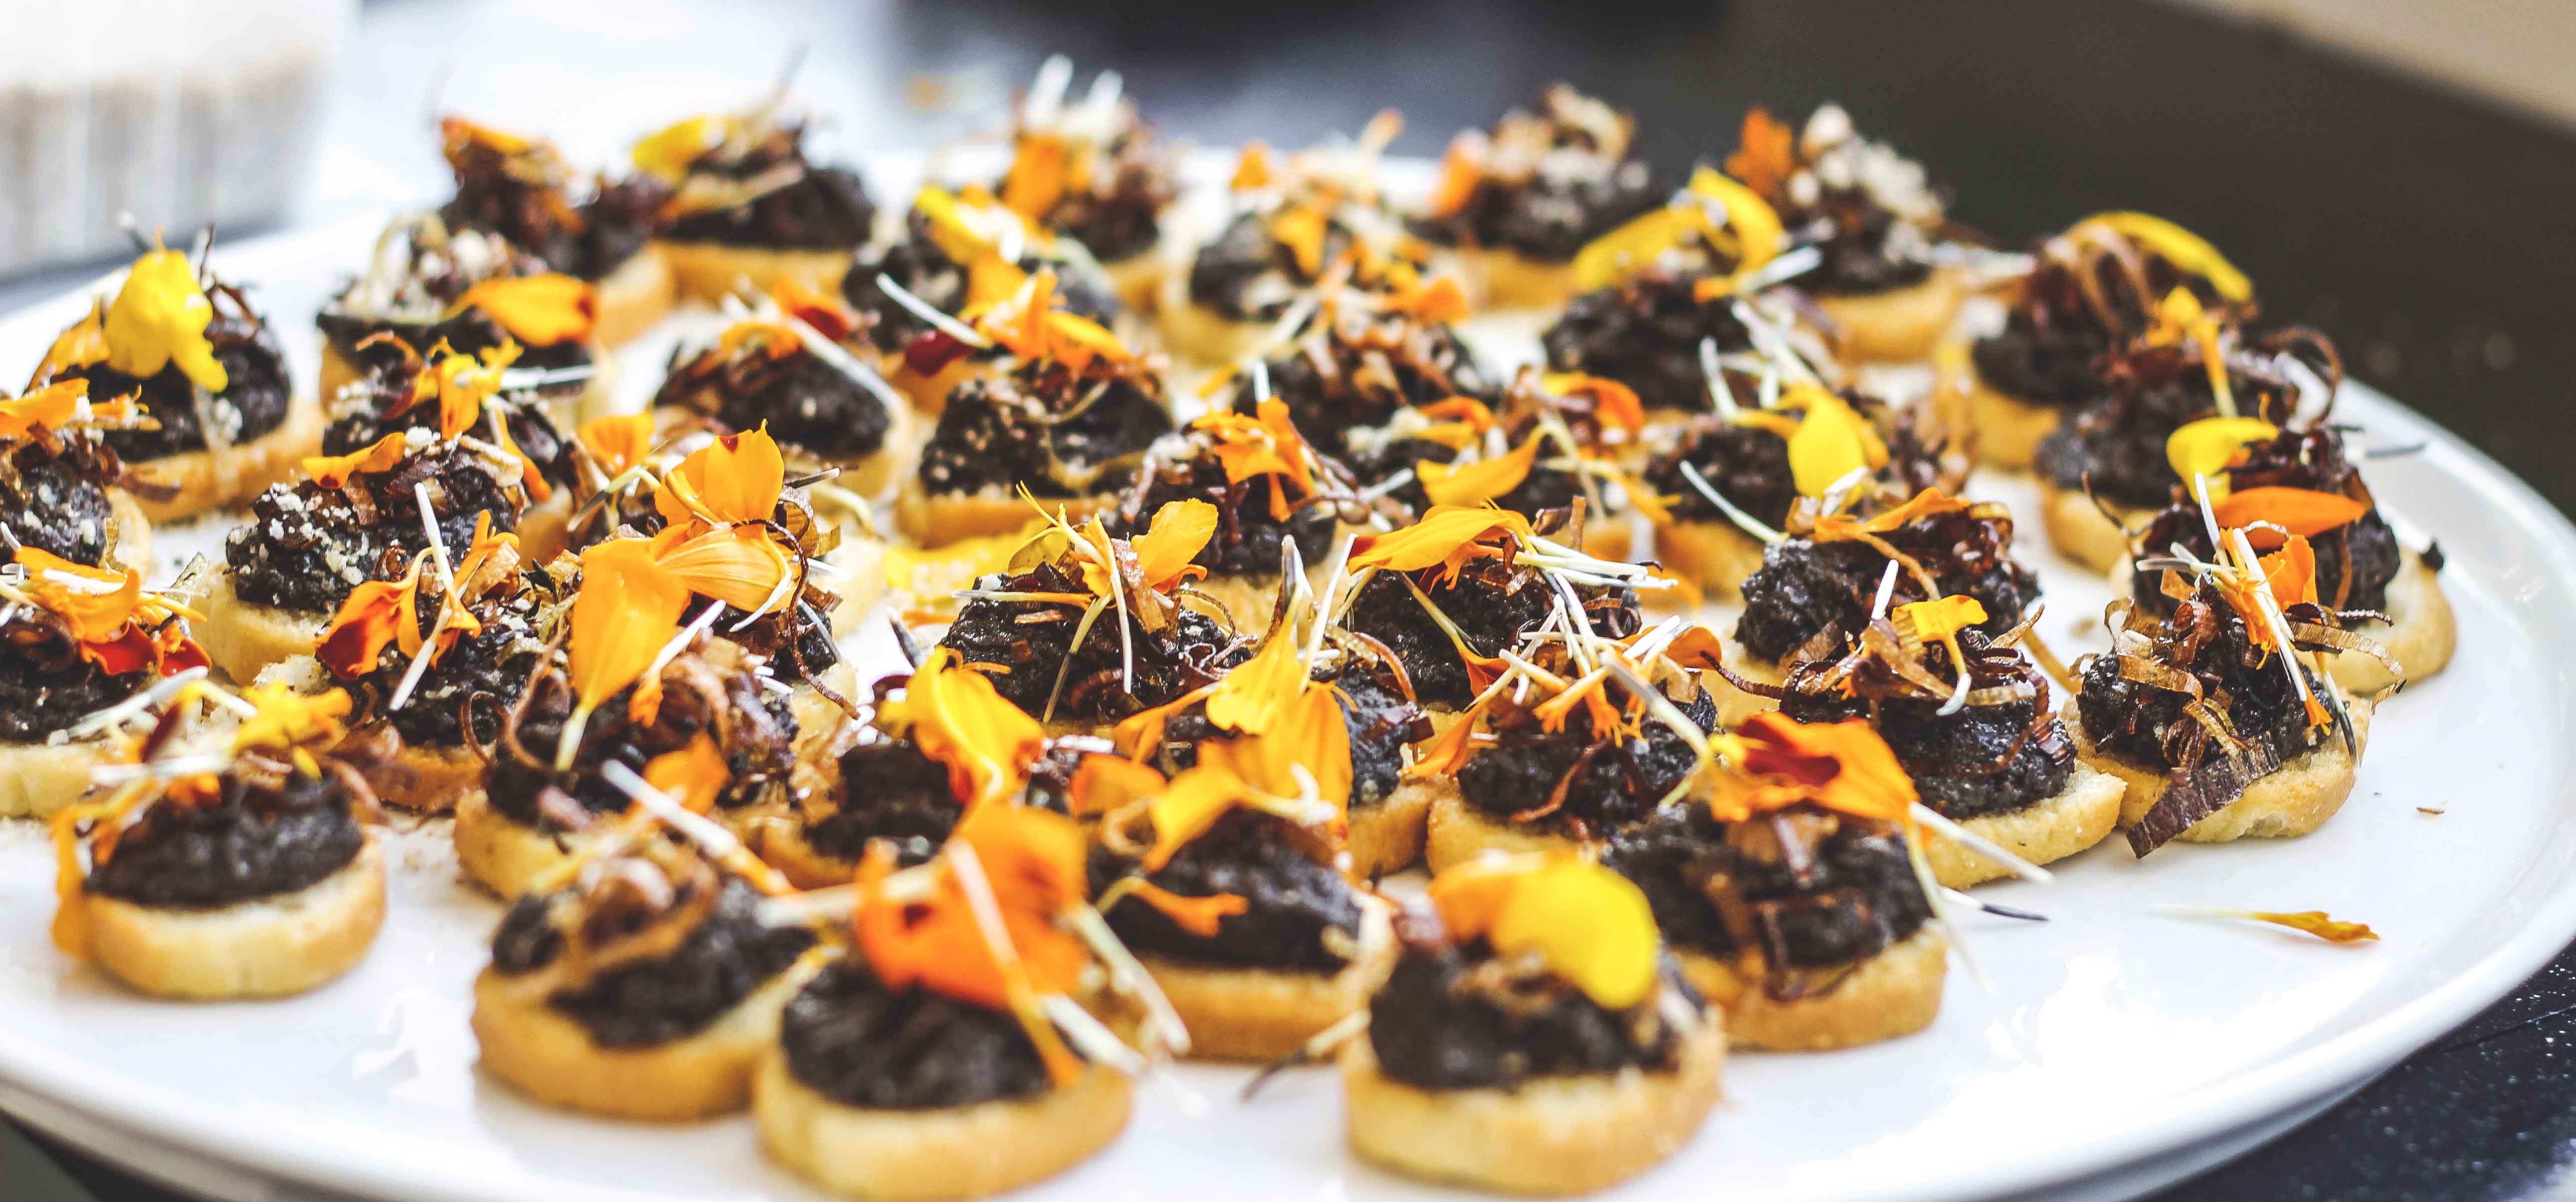 Something for Catering, Wedding Catering, Event Catering